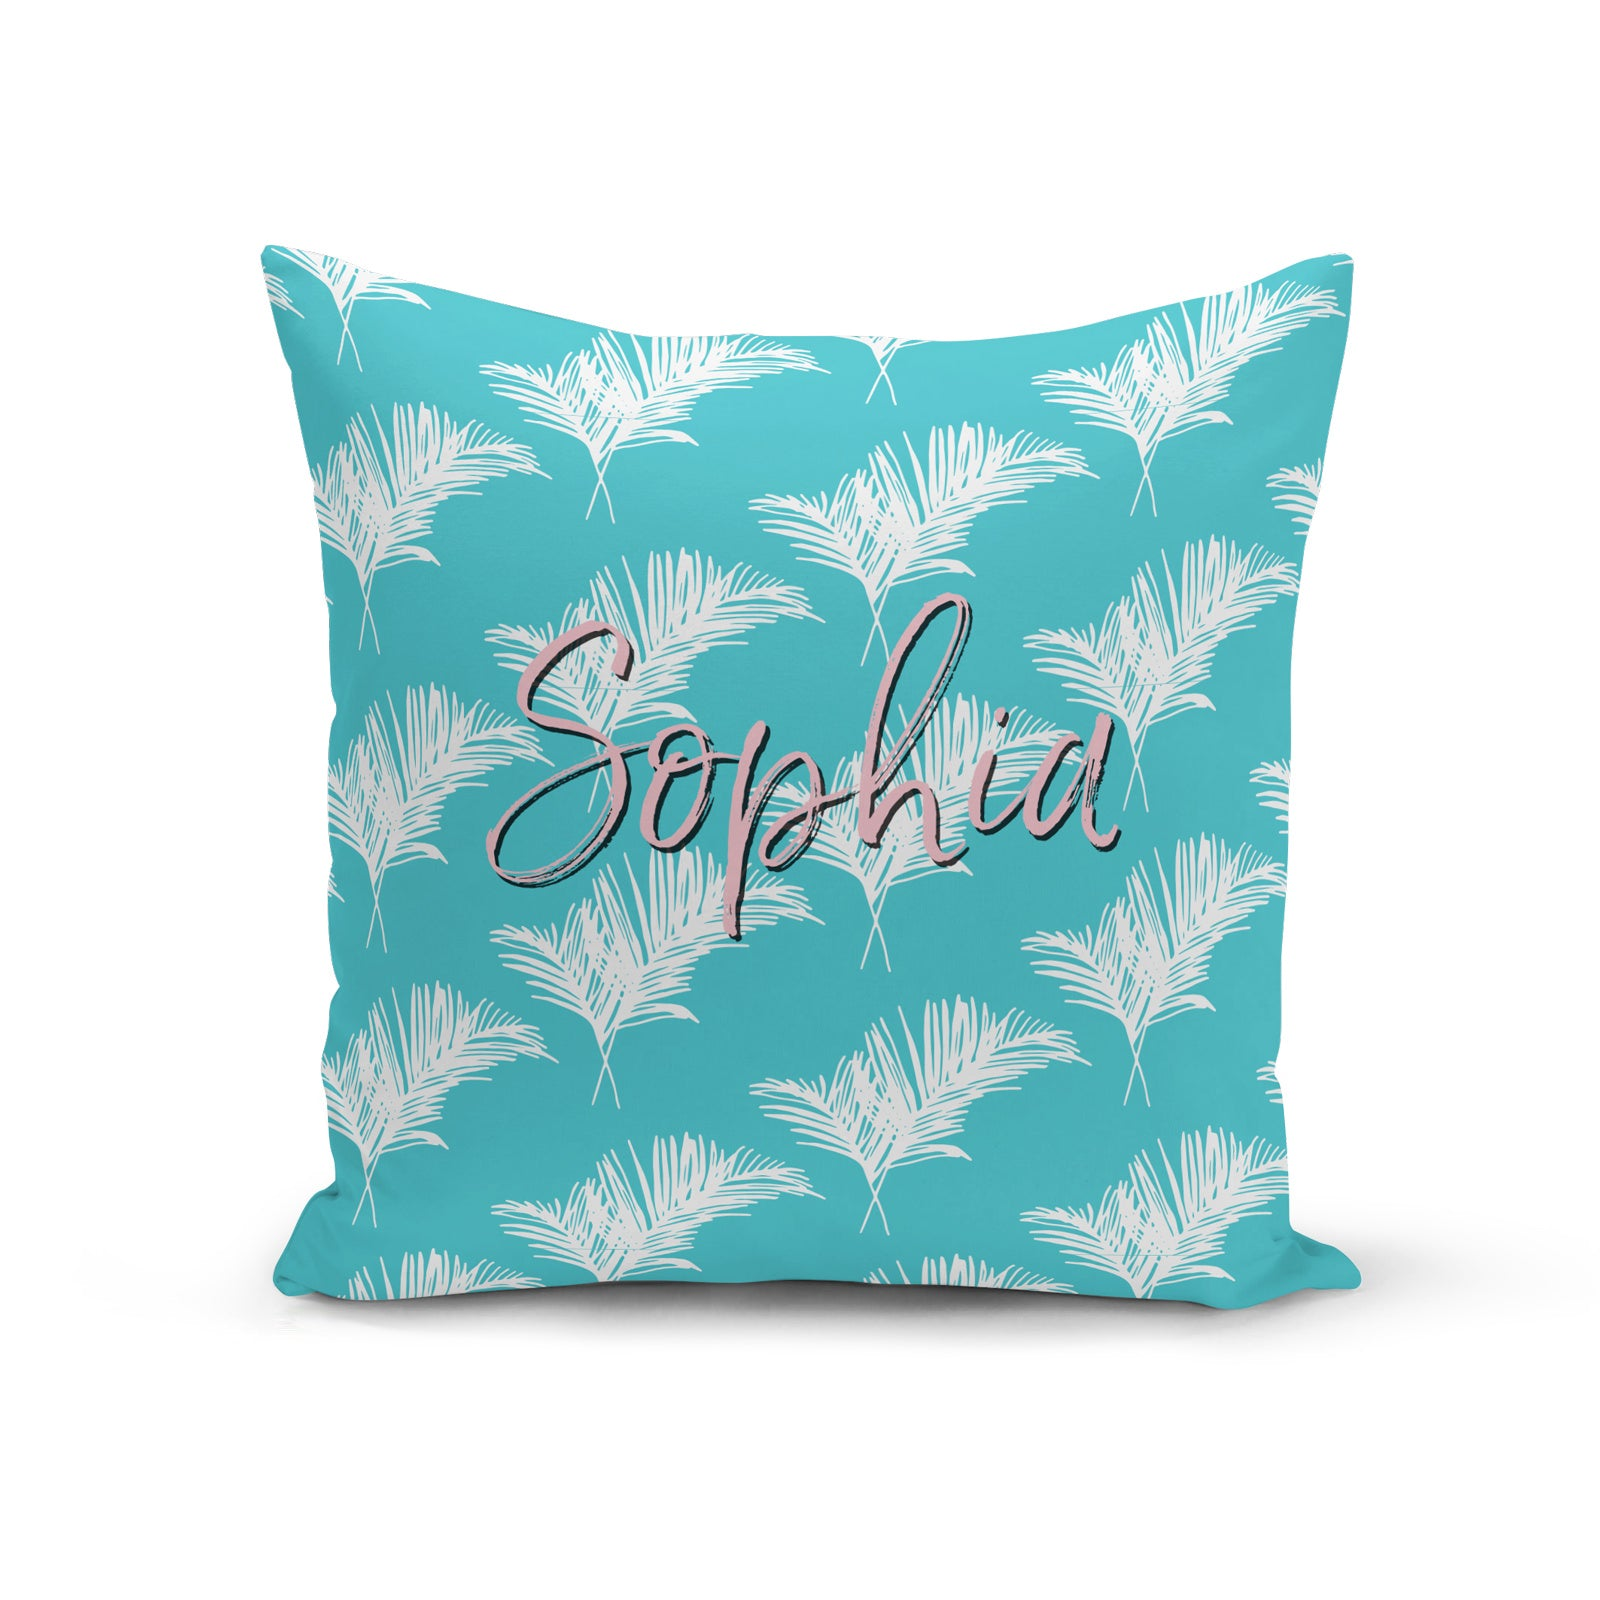 Personalised Vibrant Blue and White Leaf Cushion